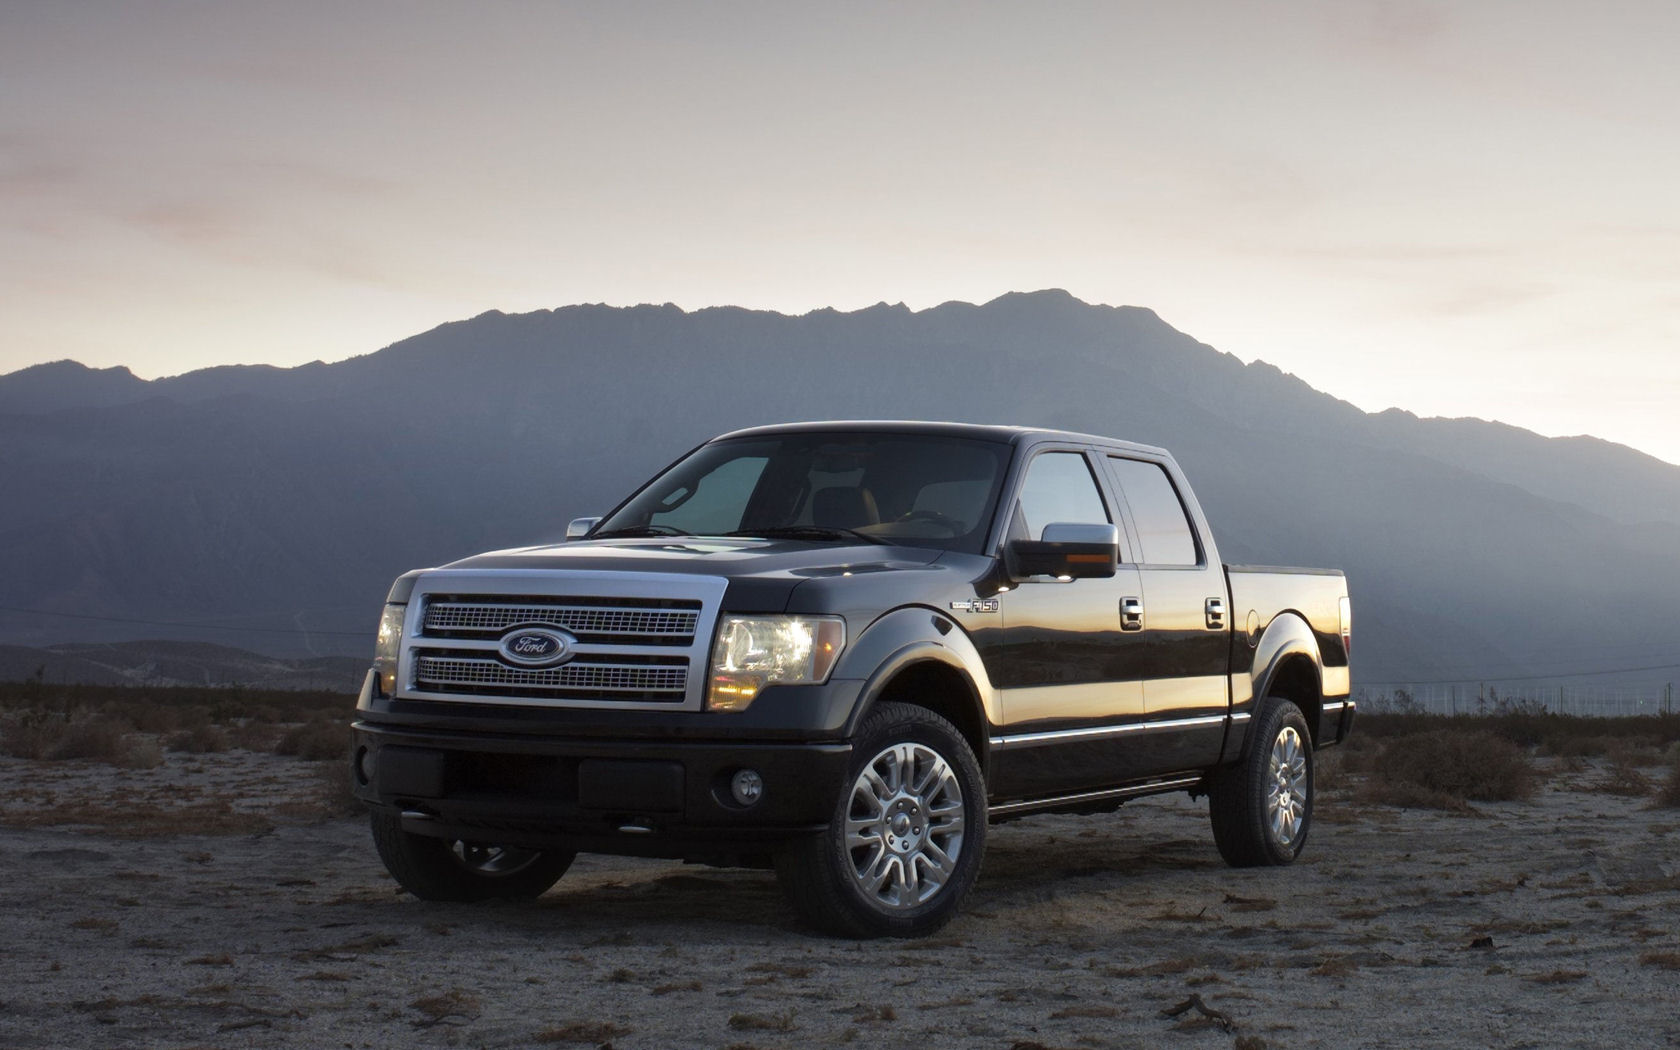 Ford Ford F150 Ford F150 Desktop Wallpapers Widescreen Wallpaper 1680x1050